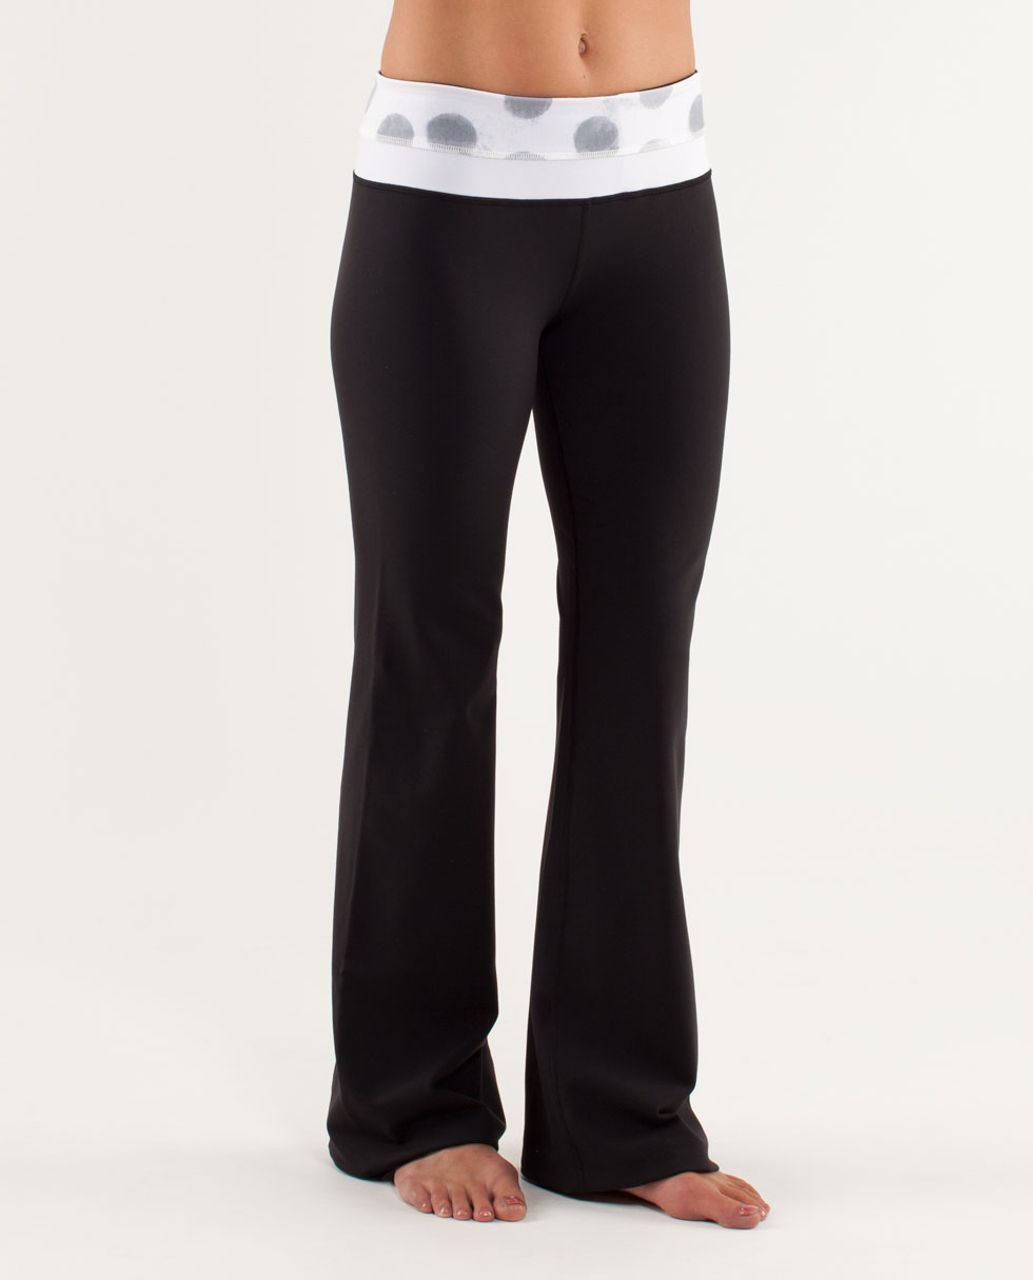 Lululemon Groove Pant (Regular) - Black / Seaside Dot White / Fossil / White